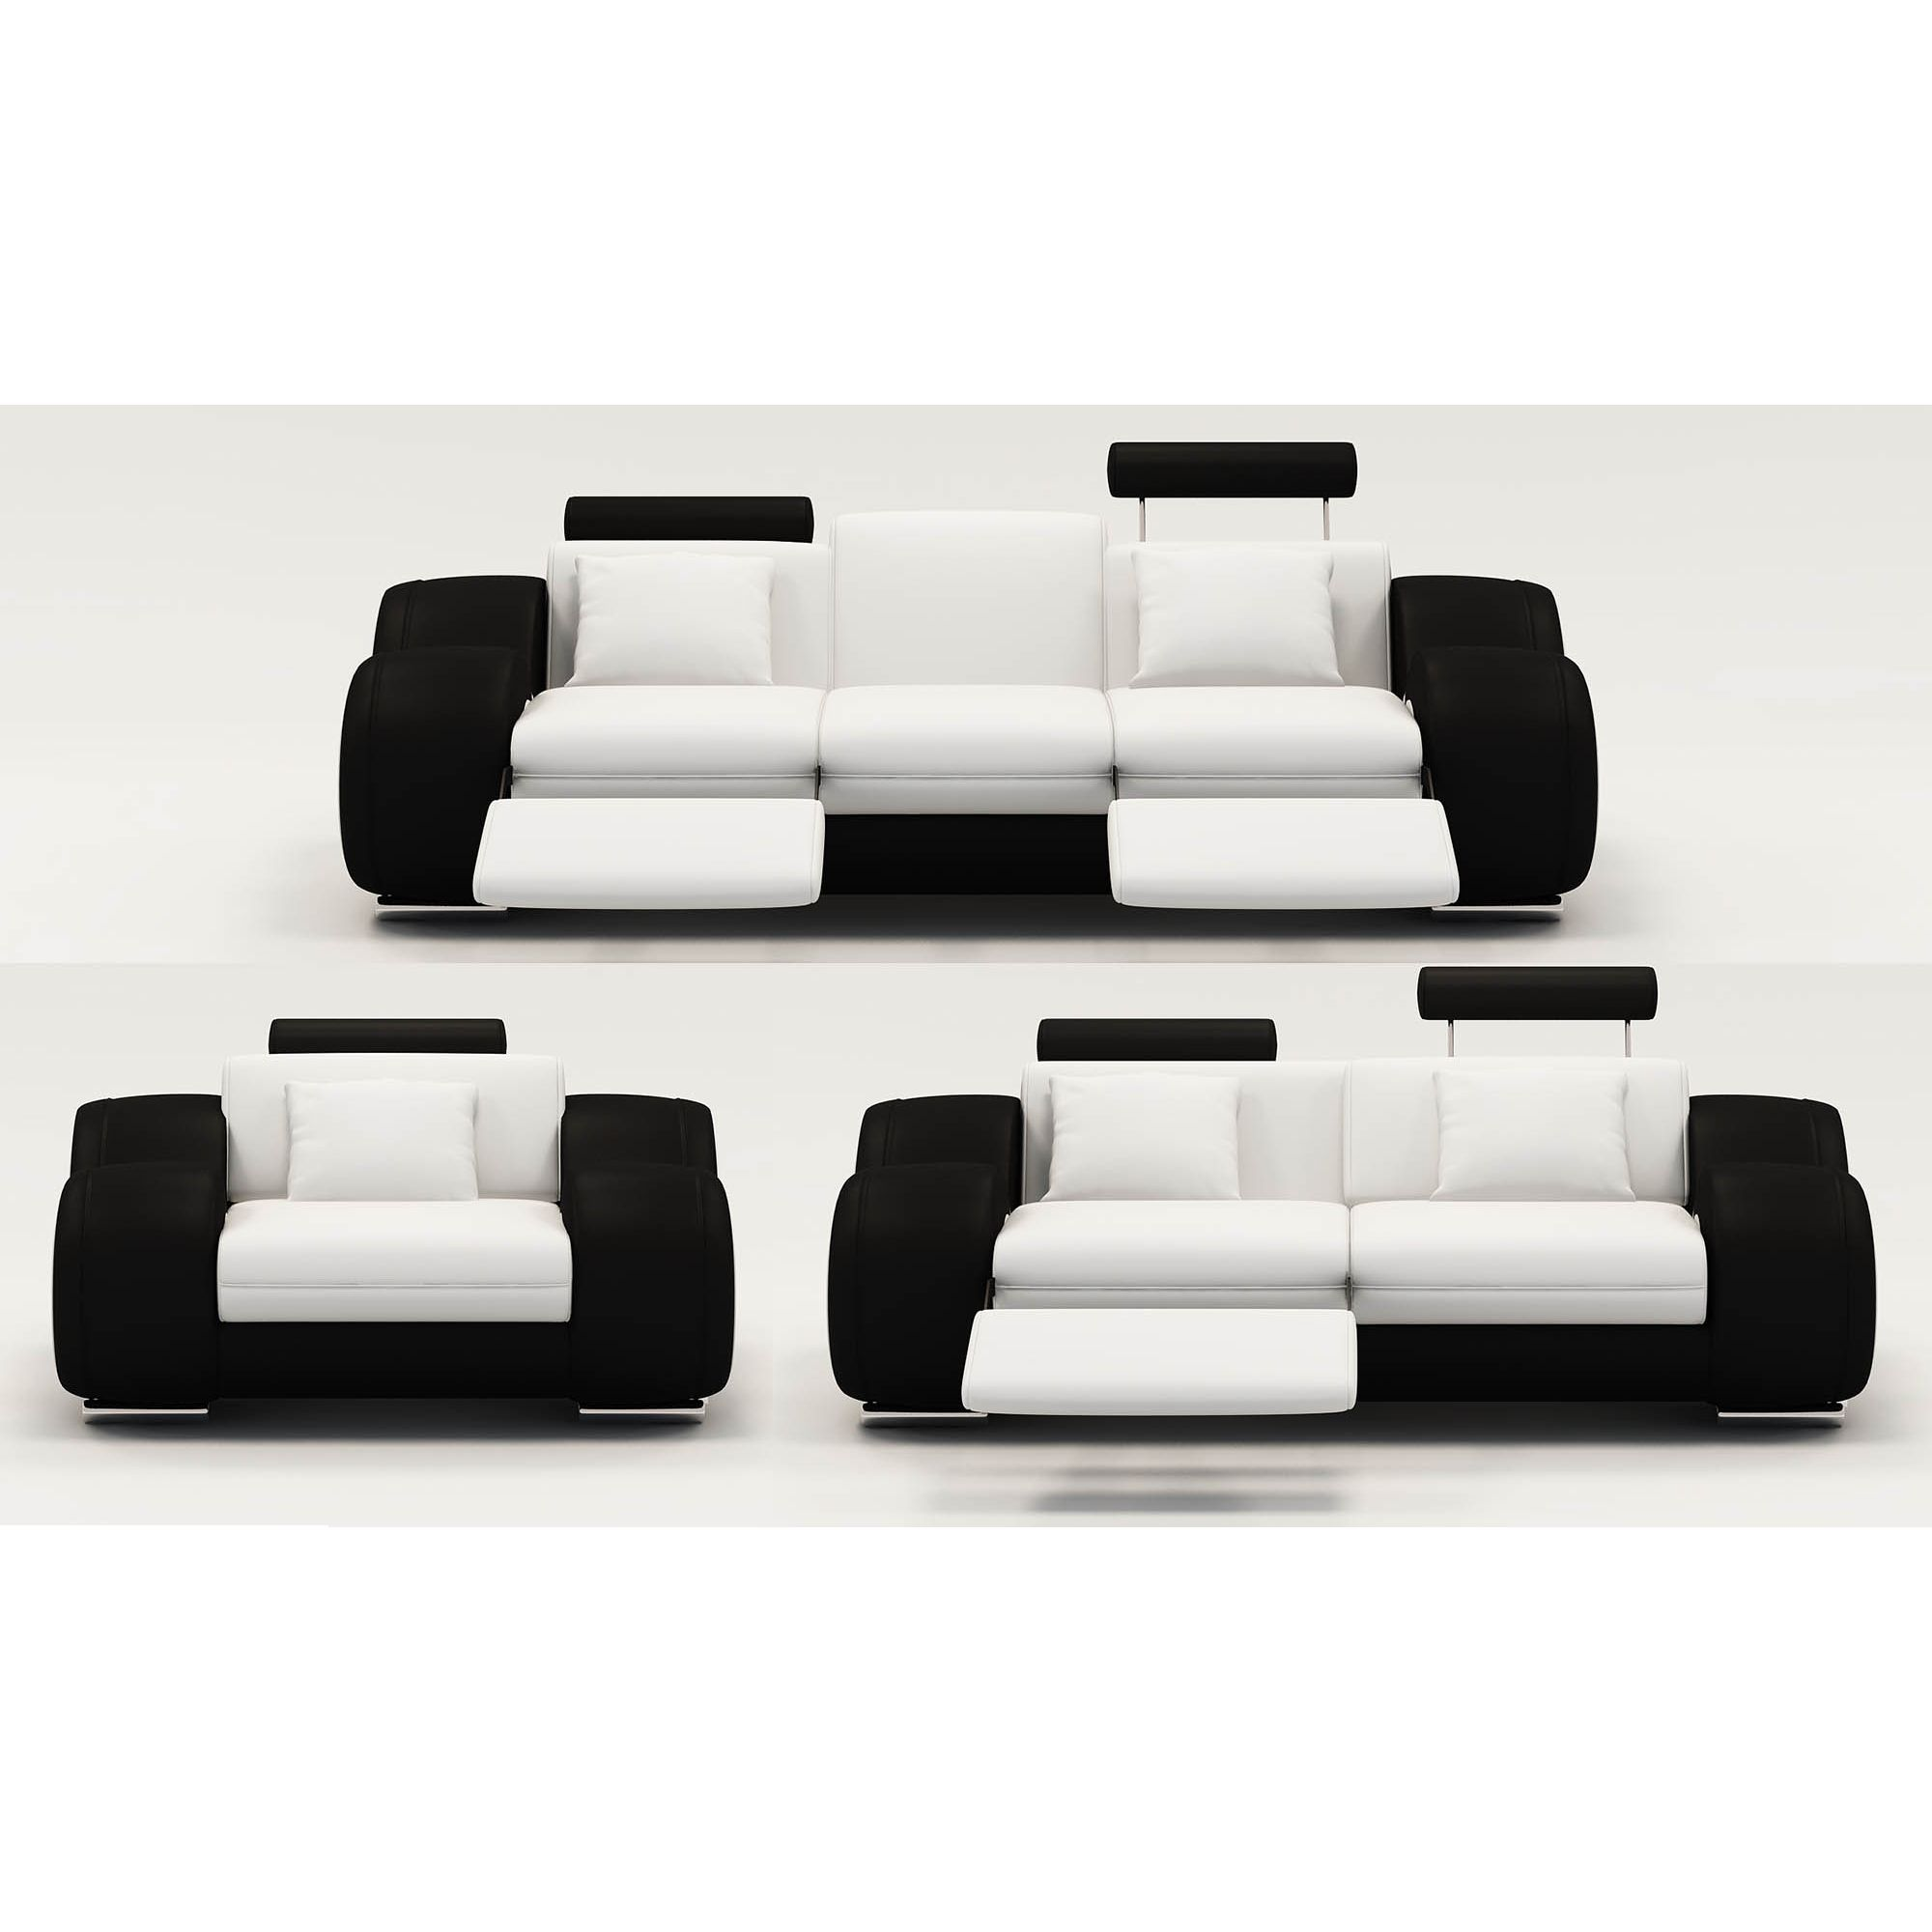 Deco in paris ensemble canape relax design 3 2 places - Canape 2 places et 3 places ...